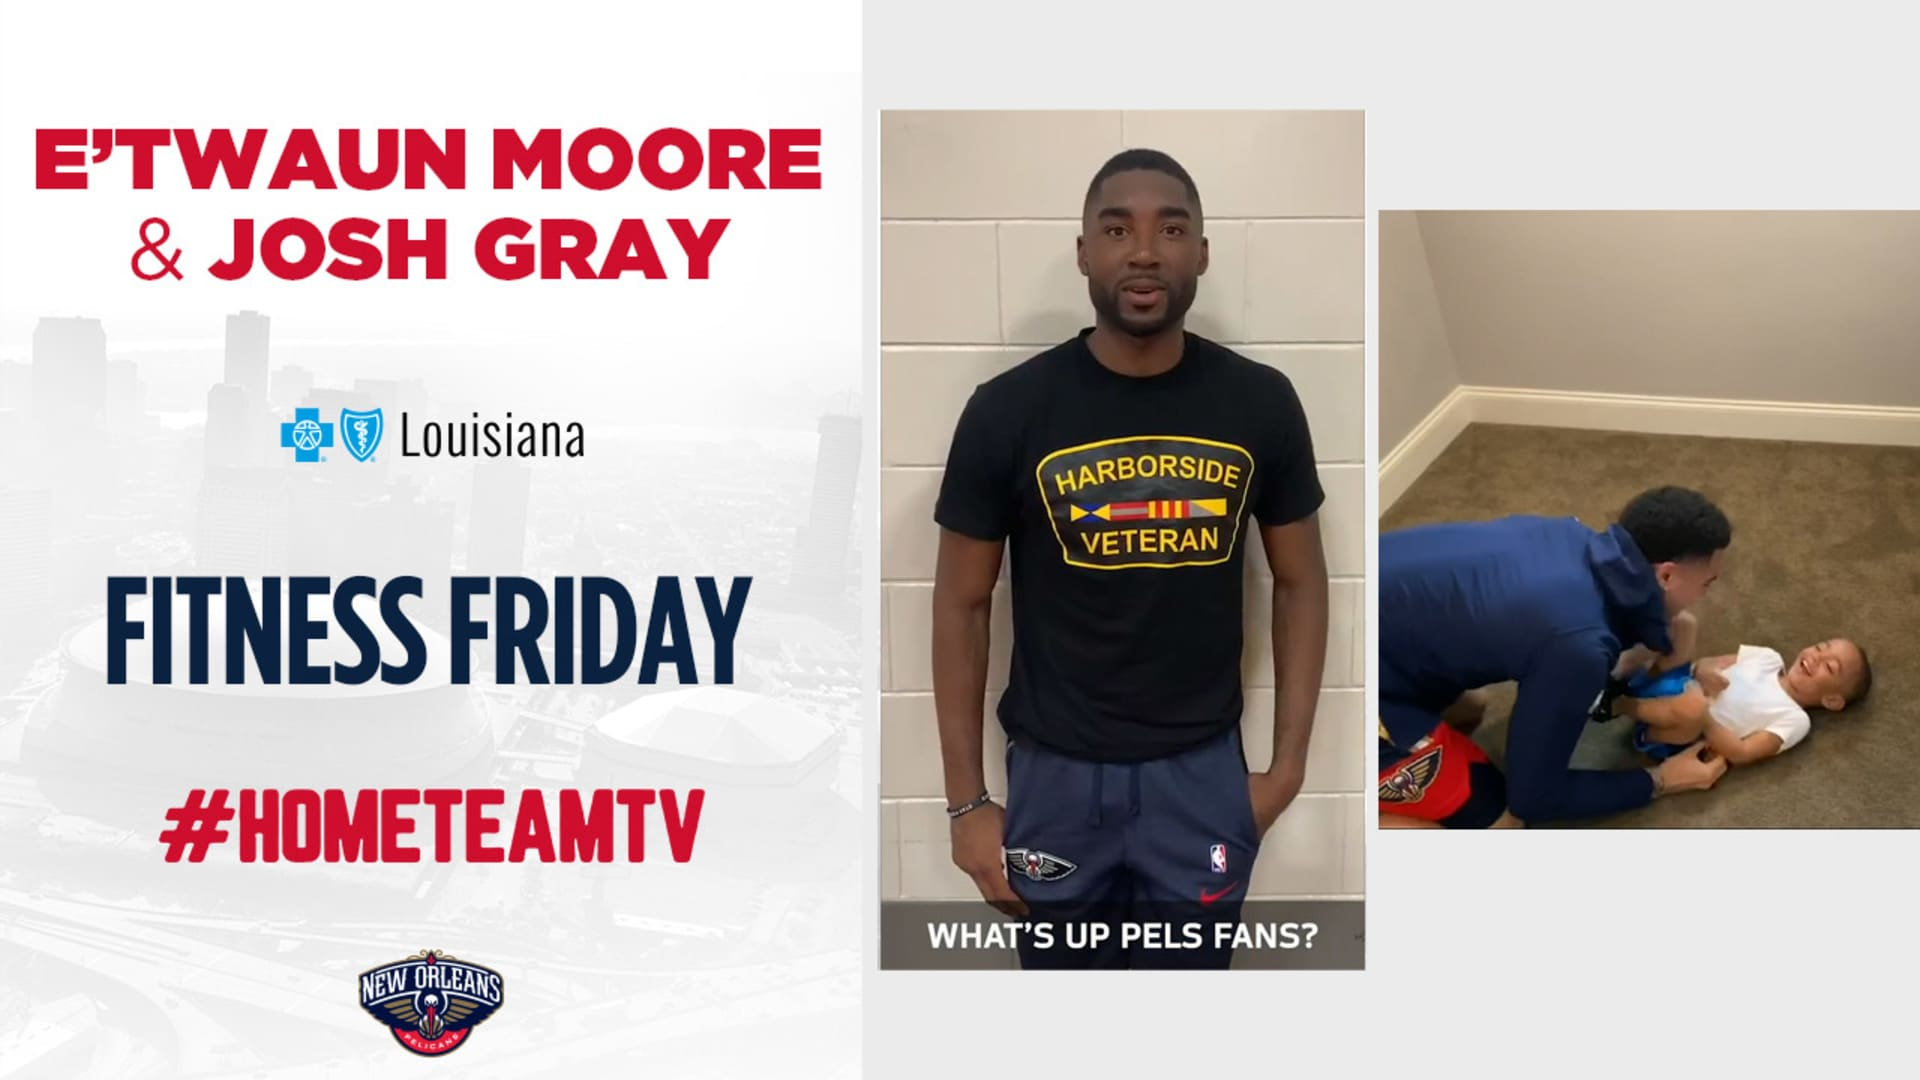 HomeTeamTV: Fitness Friday with E'Twaun Moore & Josh Gray, 4/24/20